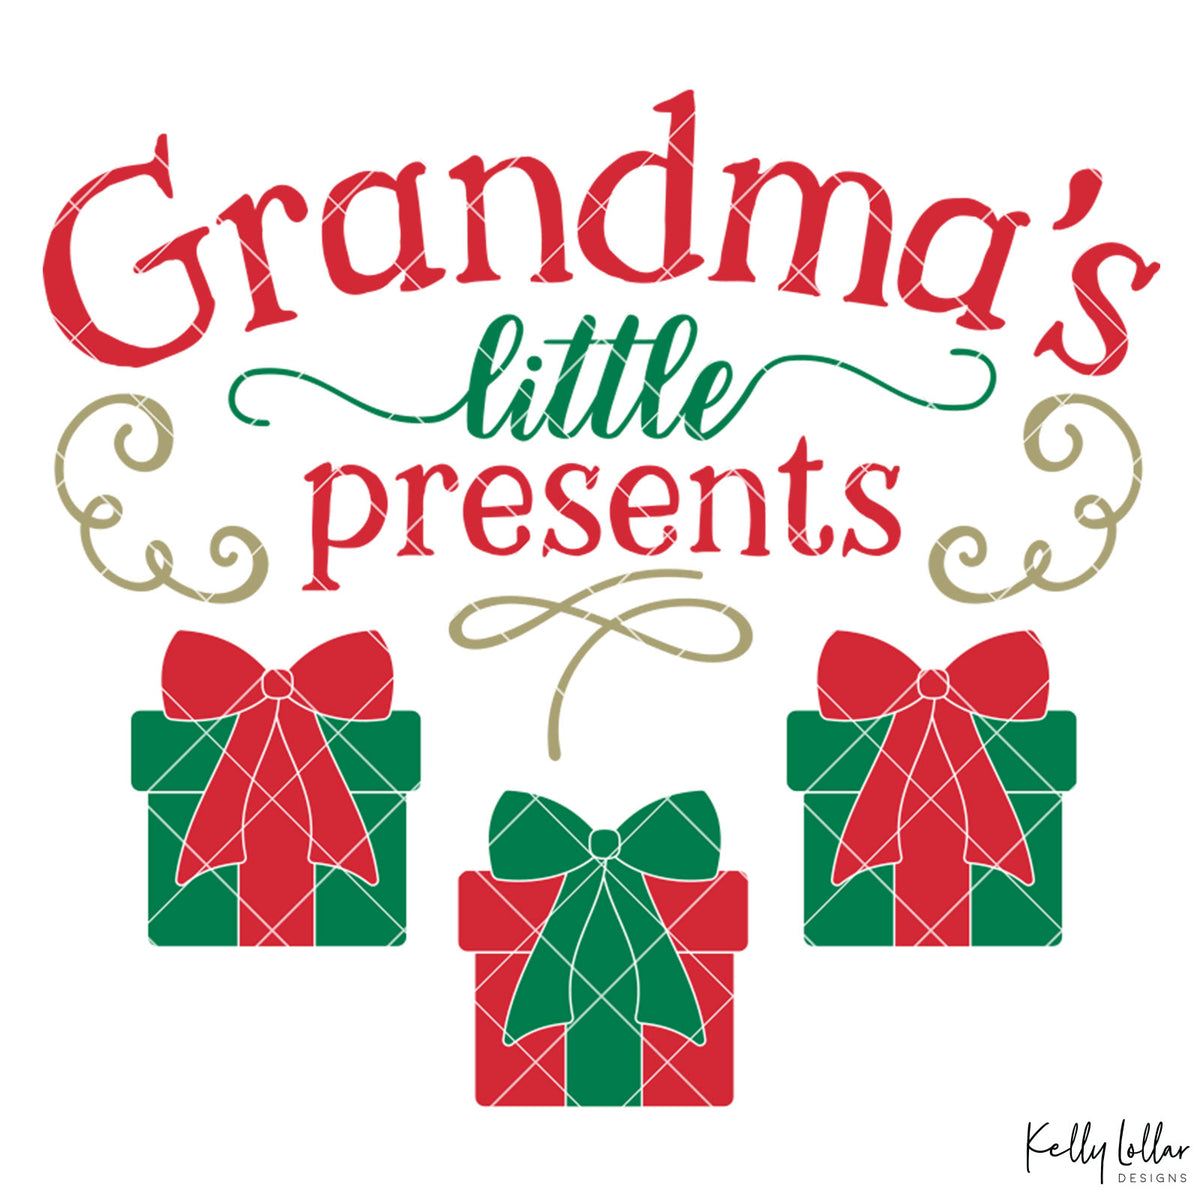 Grandma's Little Presents| Christmas Shirt Design for Grandma with Gift Boxes for Children's Names | SVG DXF PNG Cut Files